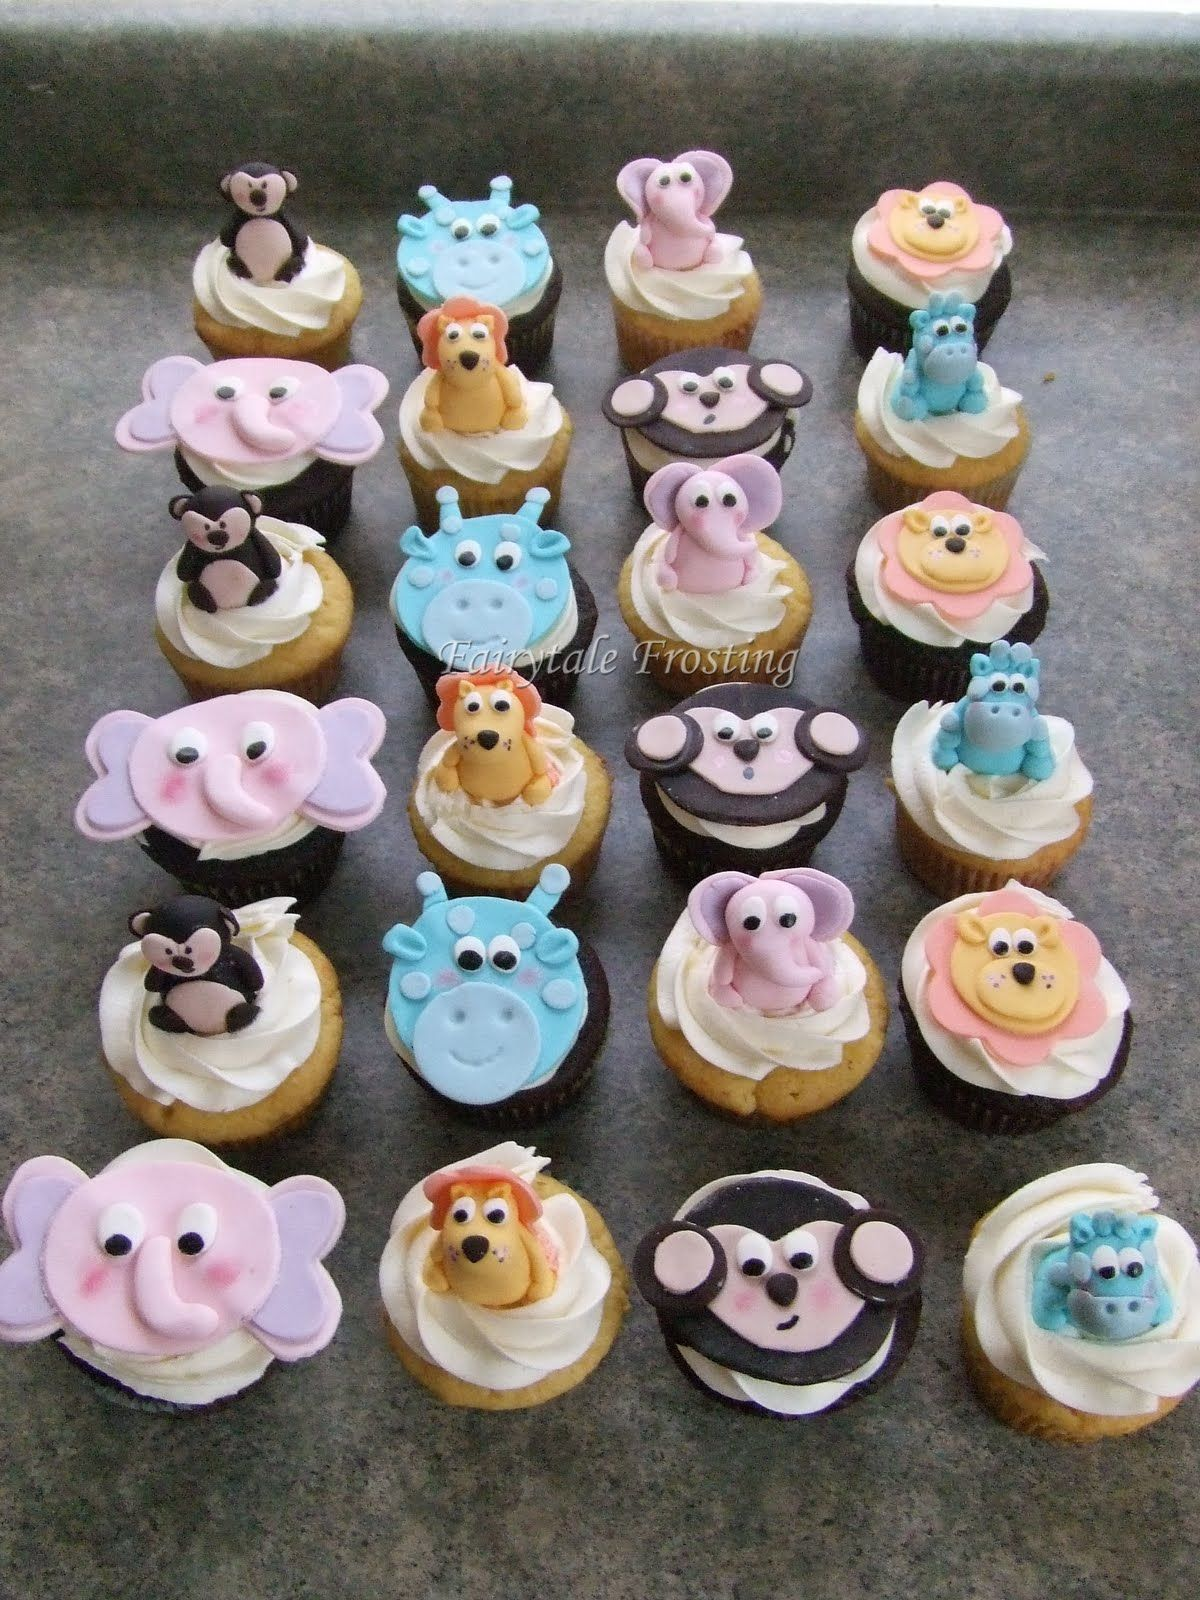 Baby Shower Cupcakes Boy Jungle Fairytale Frosting Pastel